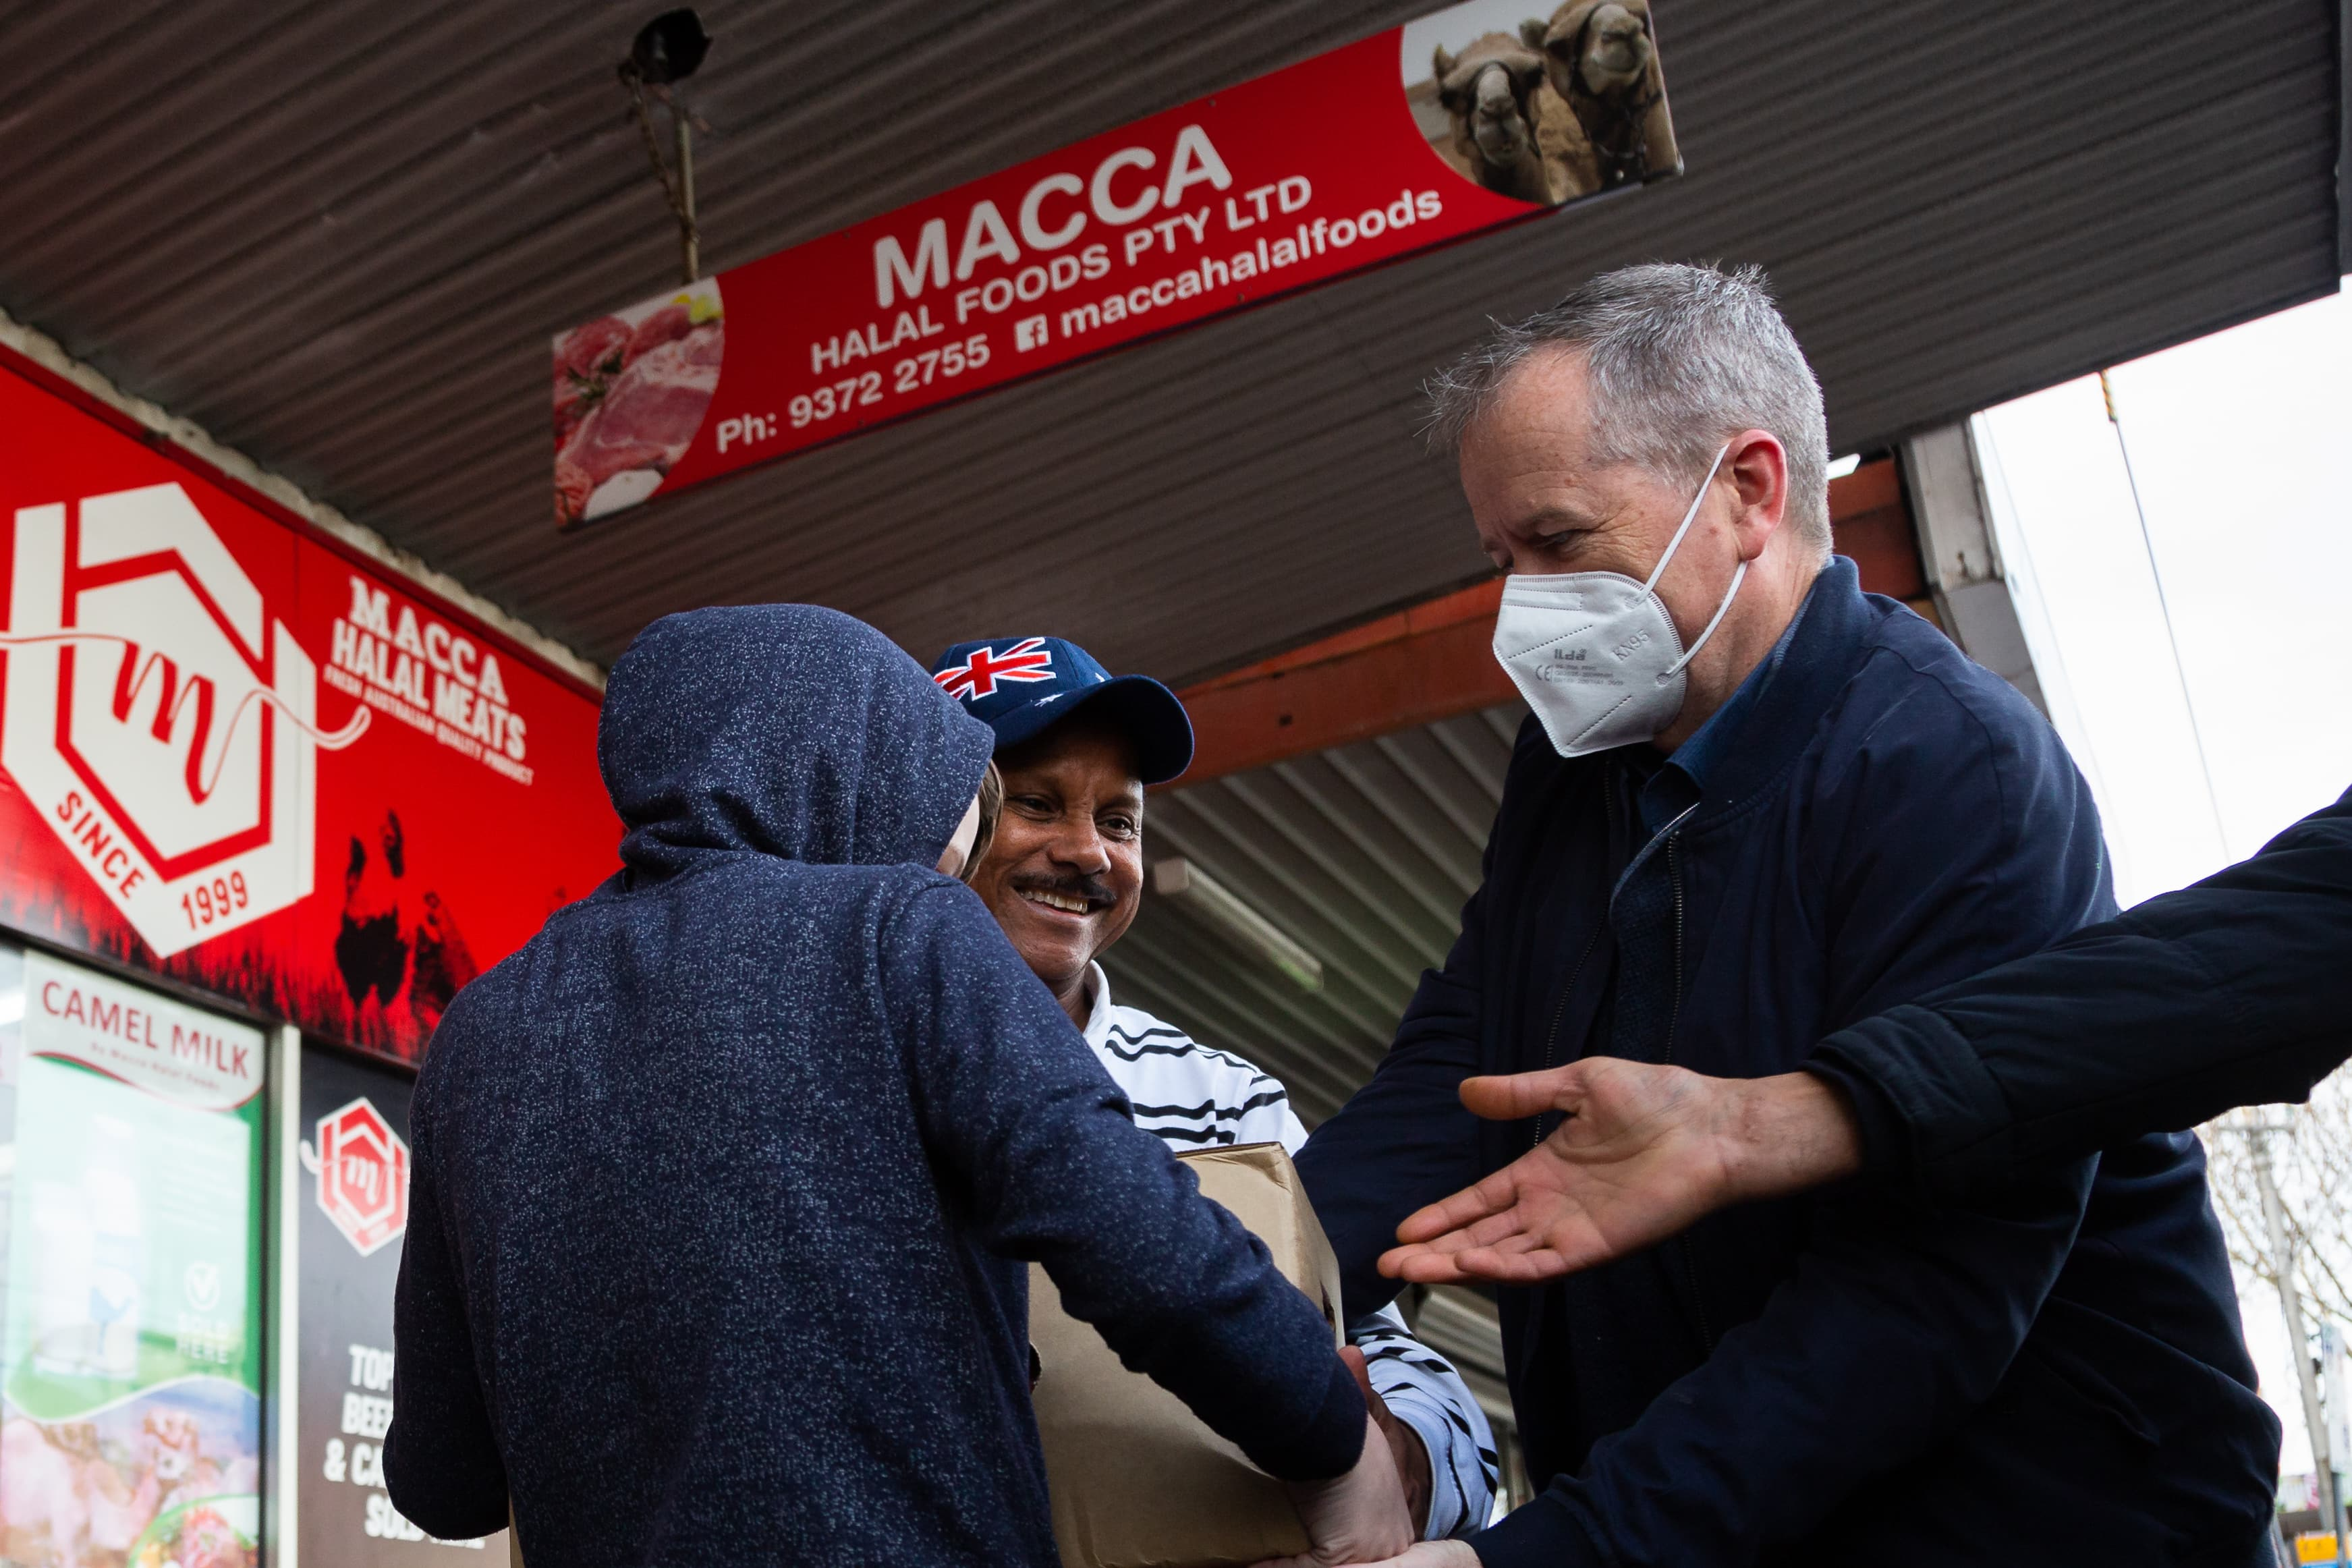 MELBOURNE, AUSTRALIA - JULY 10: Former Labor Leader Bill Shorten (R) is seen wearing a facemask as he helps a young boy load meat into a truck from Macca Halal Foods in Flemington to help feel the people affected by the housing commission tower lockdown during COVID 19 on 10 July, 2020 in Melbourne, Australia. Former Federal Labor Leader Bill Shorten, along with close allies at Trades Hall help deliver Halal meat, supplied by Macca Halal Foods to the locked down housing commission towers following a COVID-19 outbreak detected inside the complex. Mr Shorten was able to use his high profile to ensure food was not turned away by police so that it would reach the residents inside. (Photo by Speed Media/Icon Sportswire)